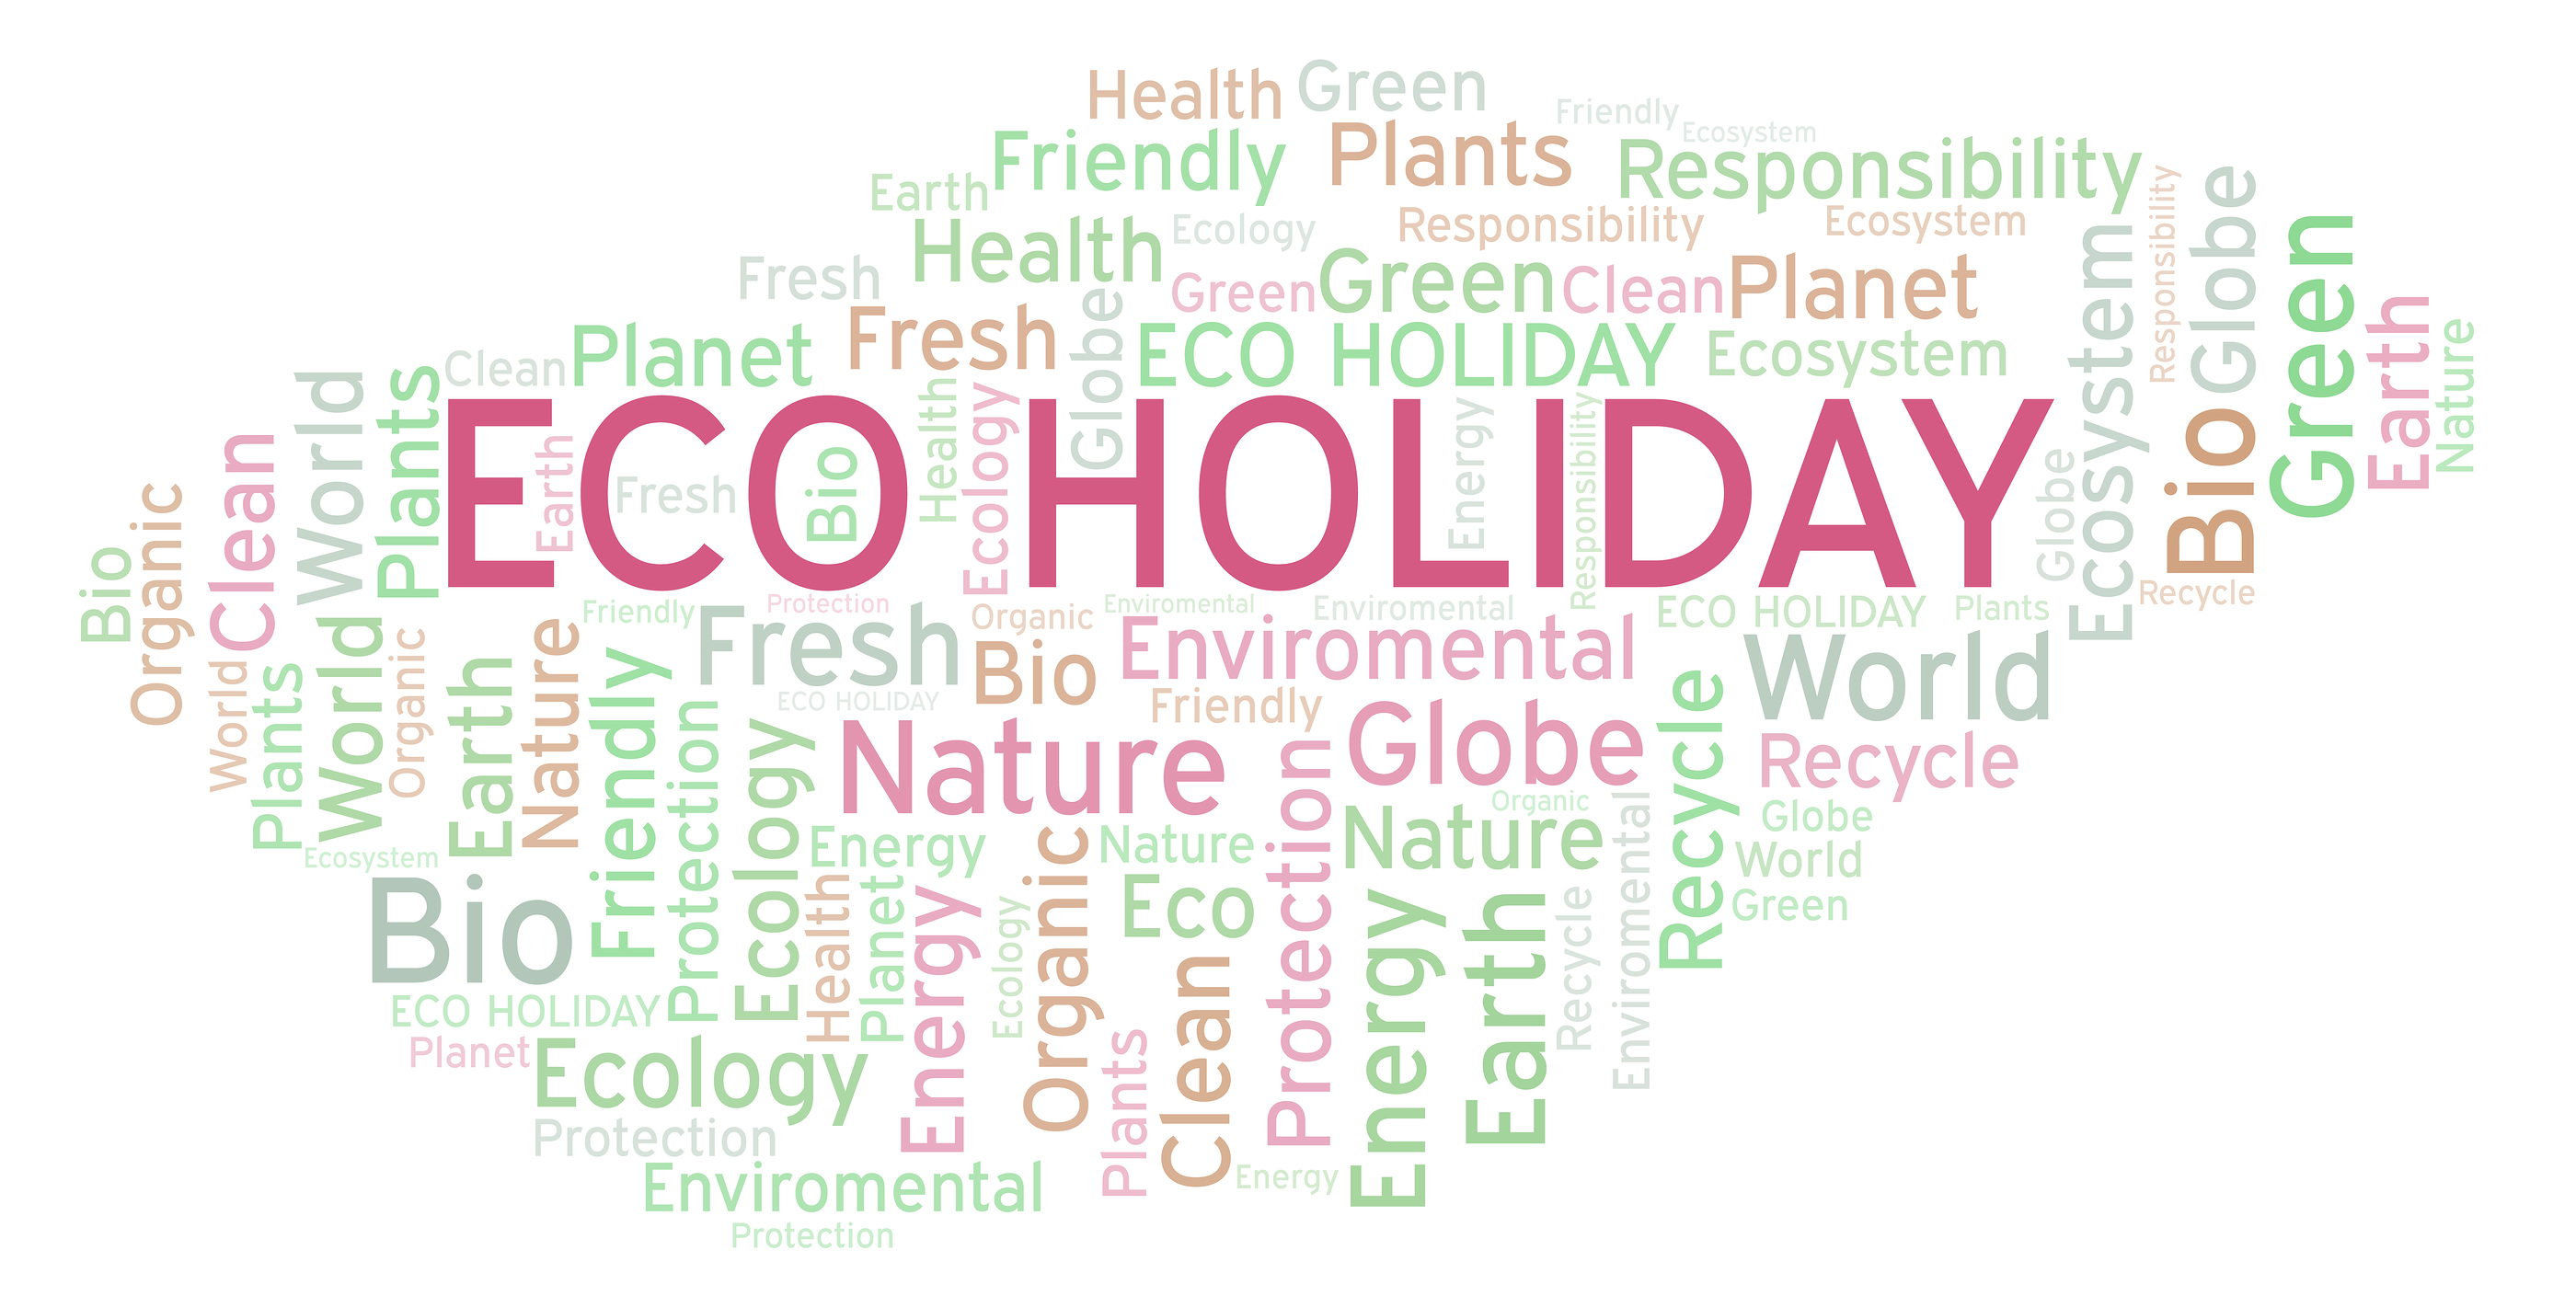 Eco-Friendly Holiday